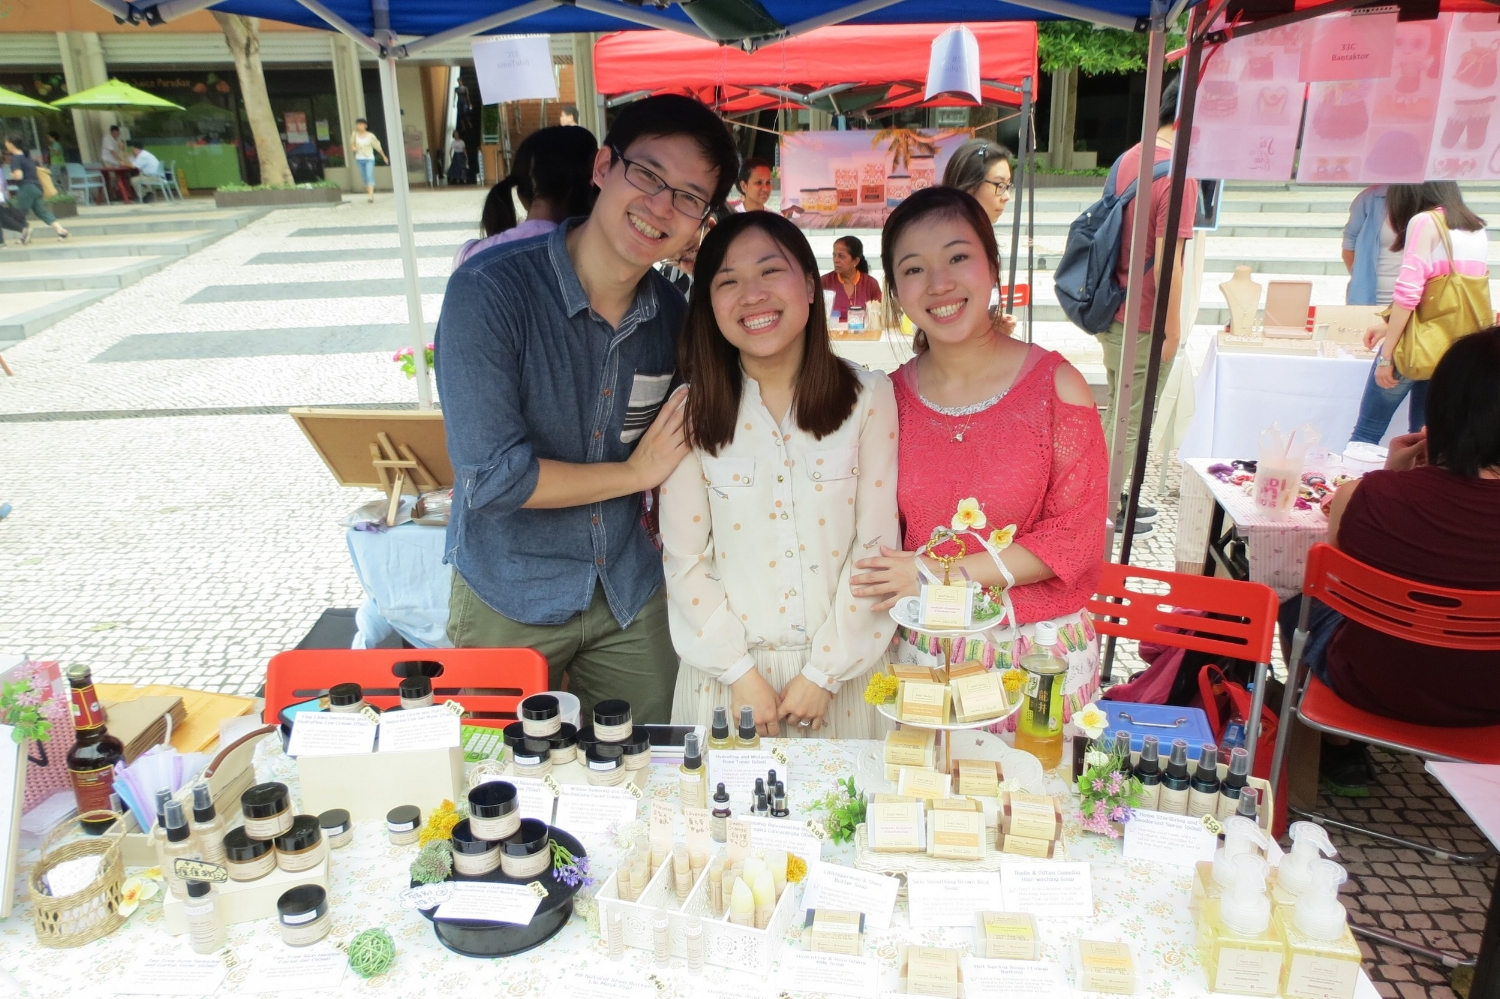 Shirley, center, with her husband and her sister, has created the Kiddy Shirley brand of Hong Kong handmade soaps